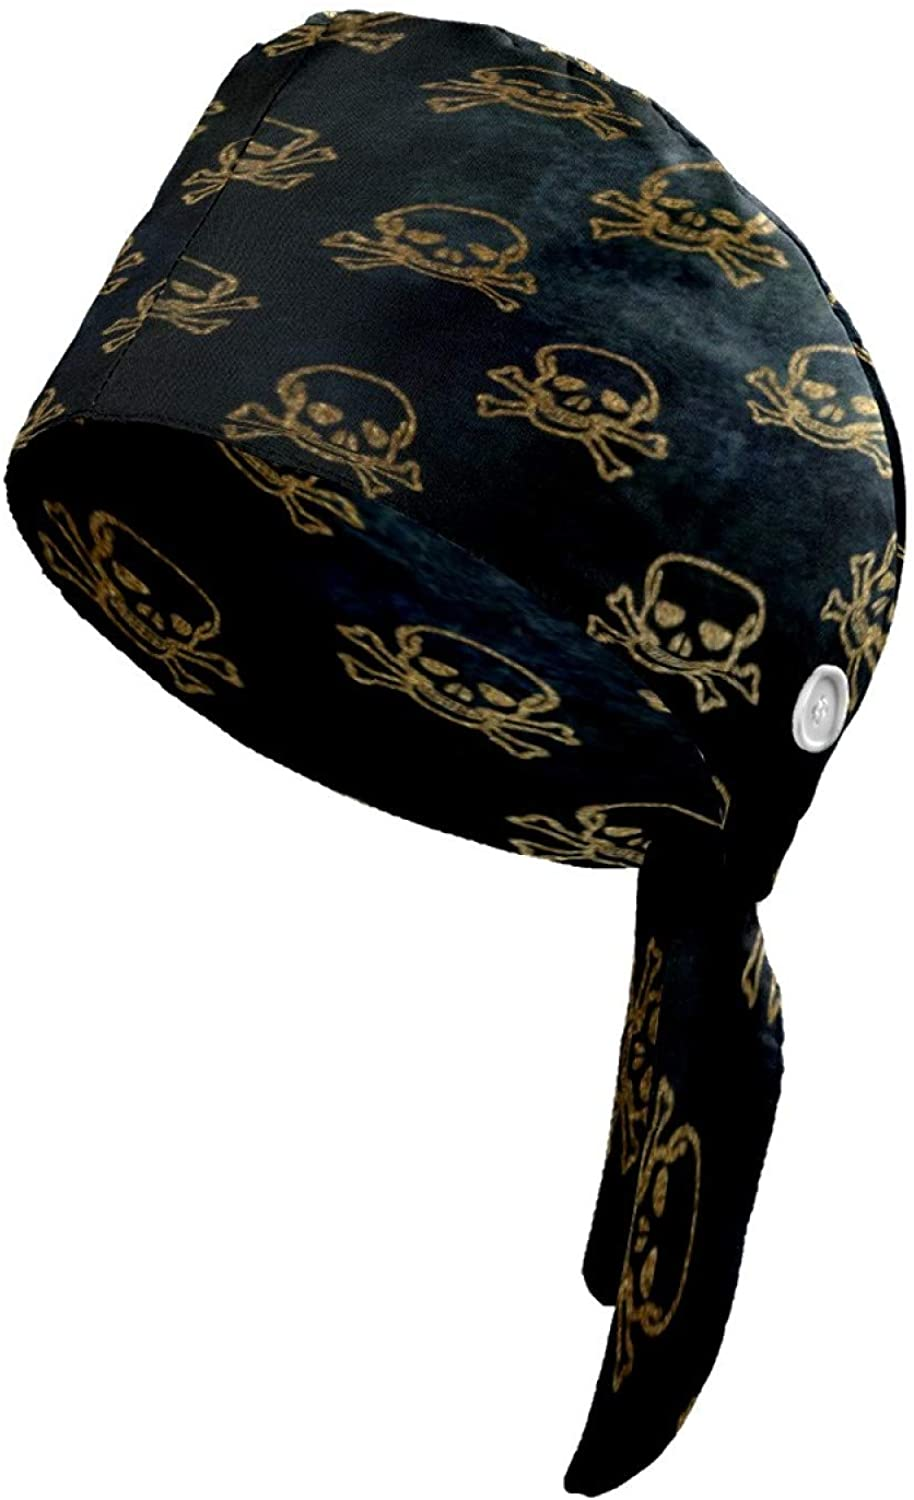 Cute Scarf Hat Women Working Cap Head Scarf for Men Printed Hats with Button for Men and Women Golden Skull Hair Cover with Button Women Hats and Scarves Funny Tie Back Hat